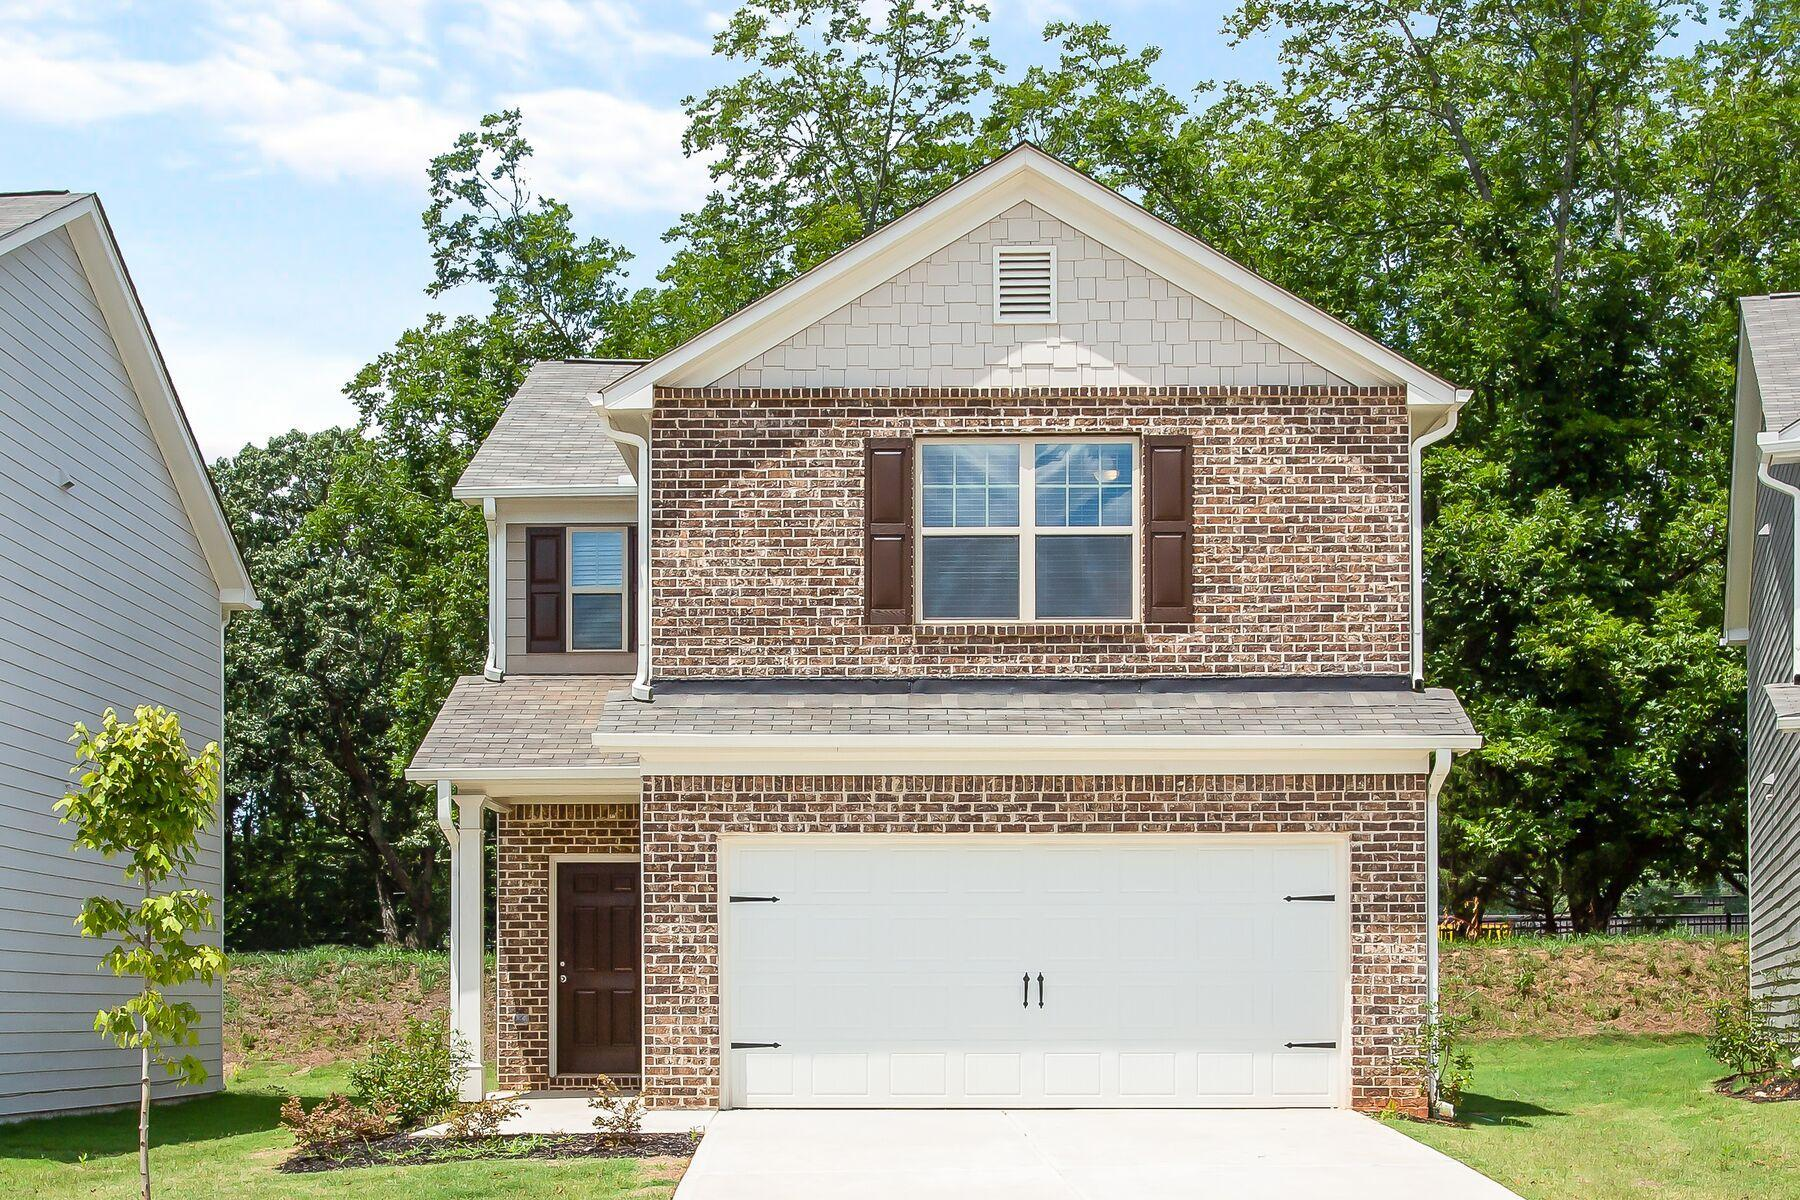 The Charleston by LGI Homes:Spacious 3-bedroom home with great curb appeal!